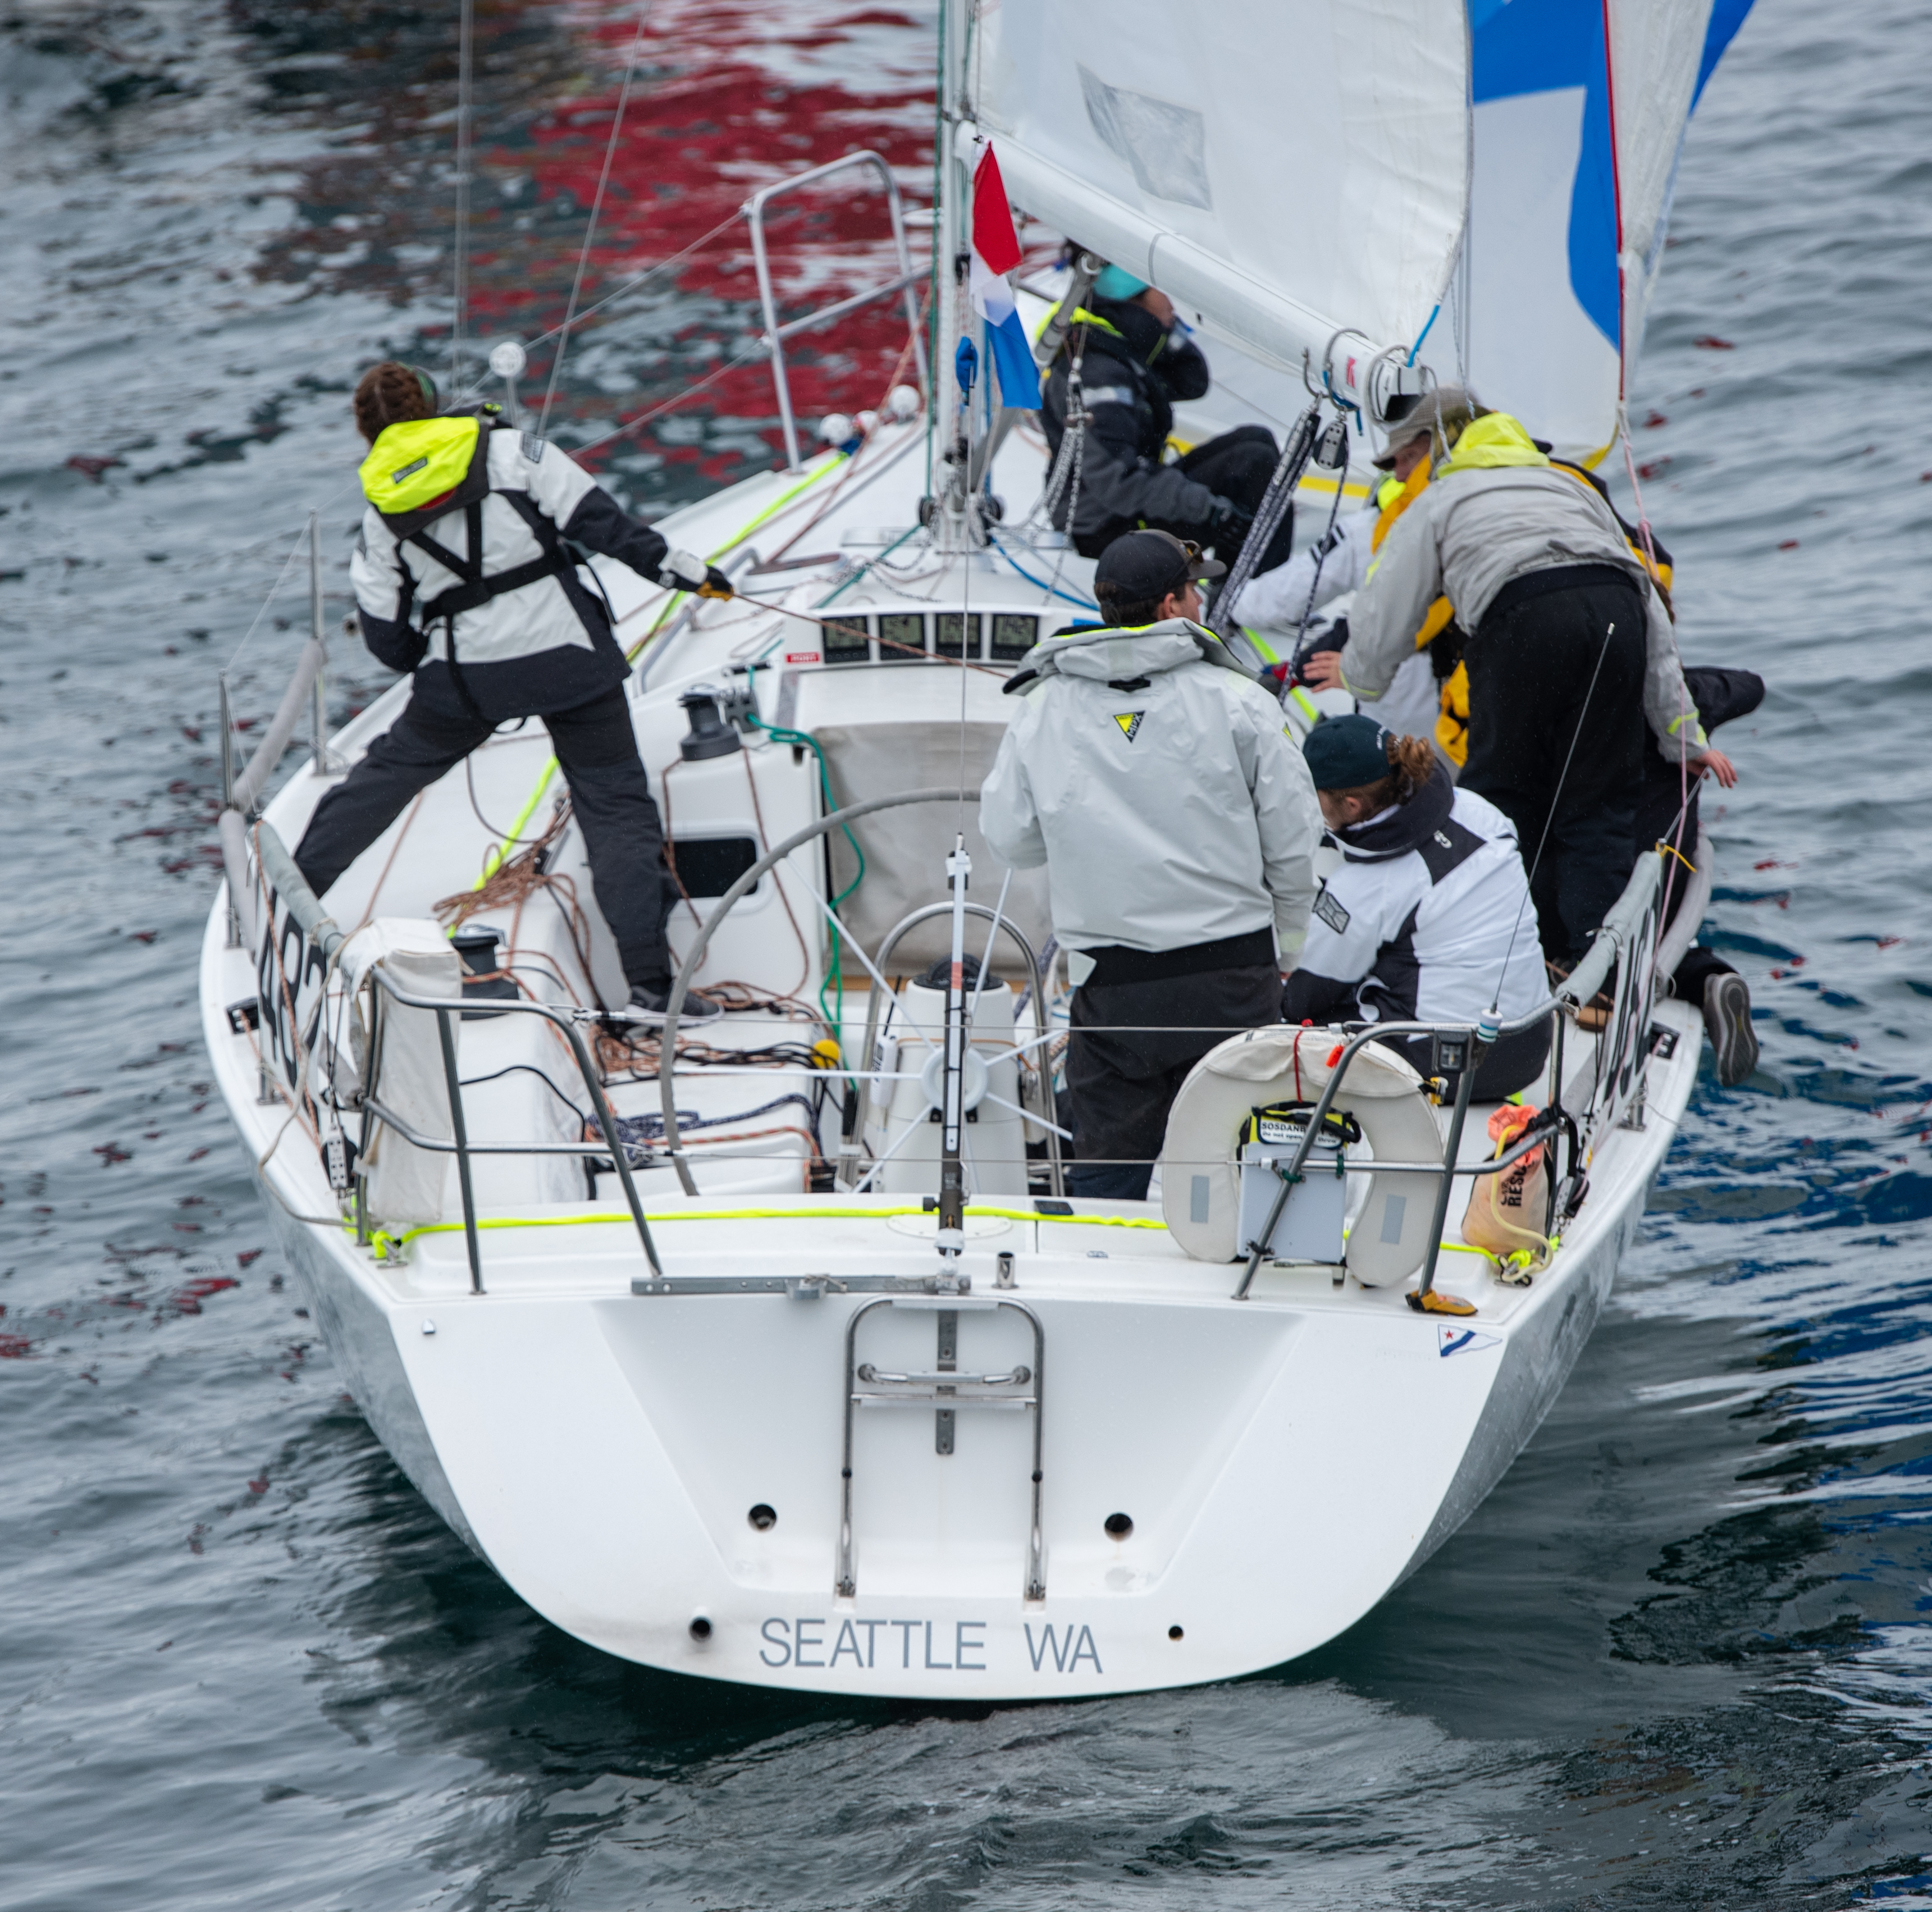 Swiftsure-25-May-2019-RMS-Media-by-Rob-Porter-70